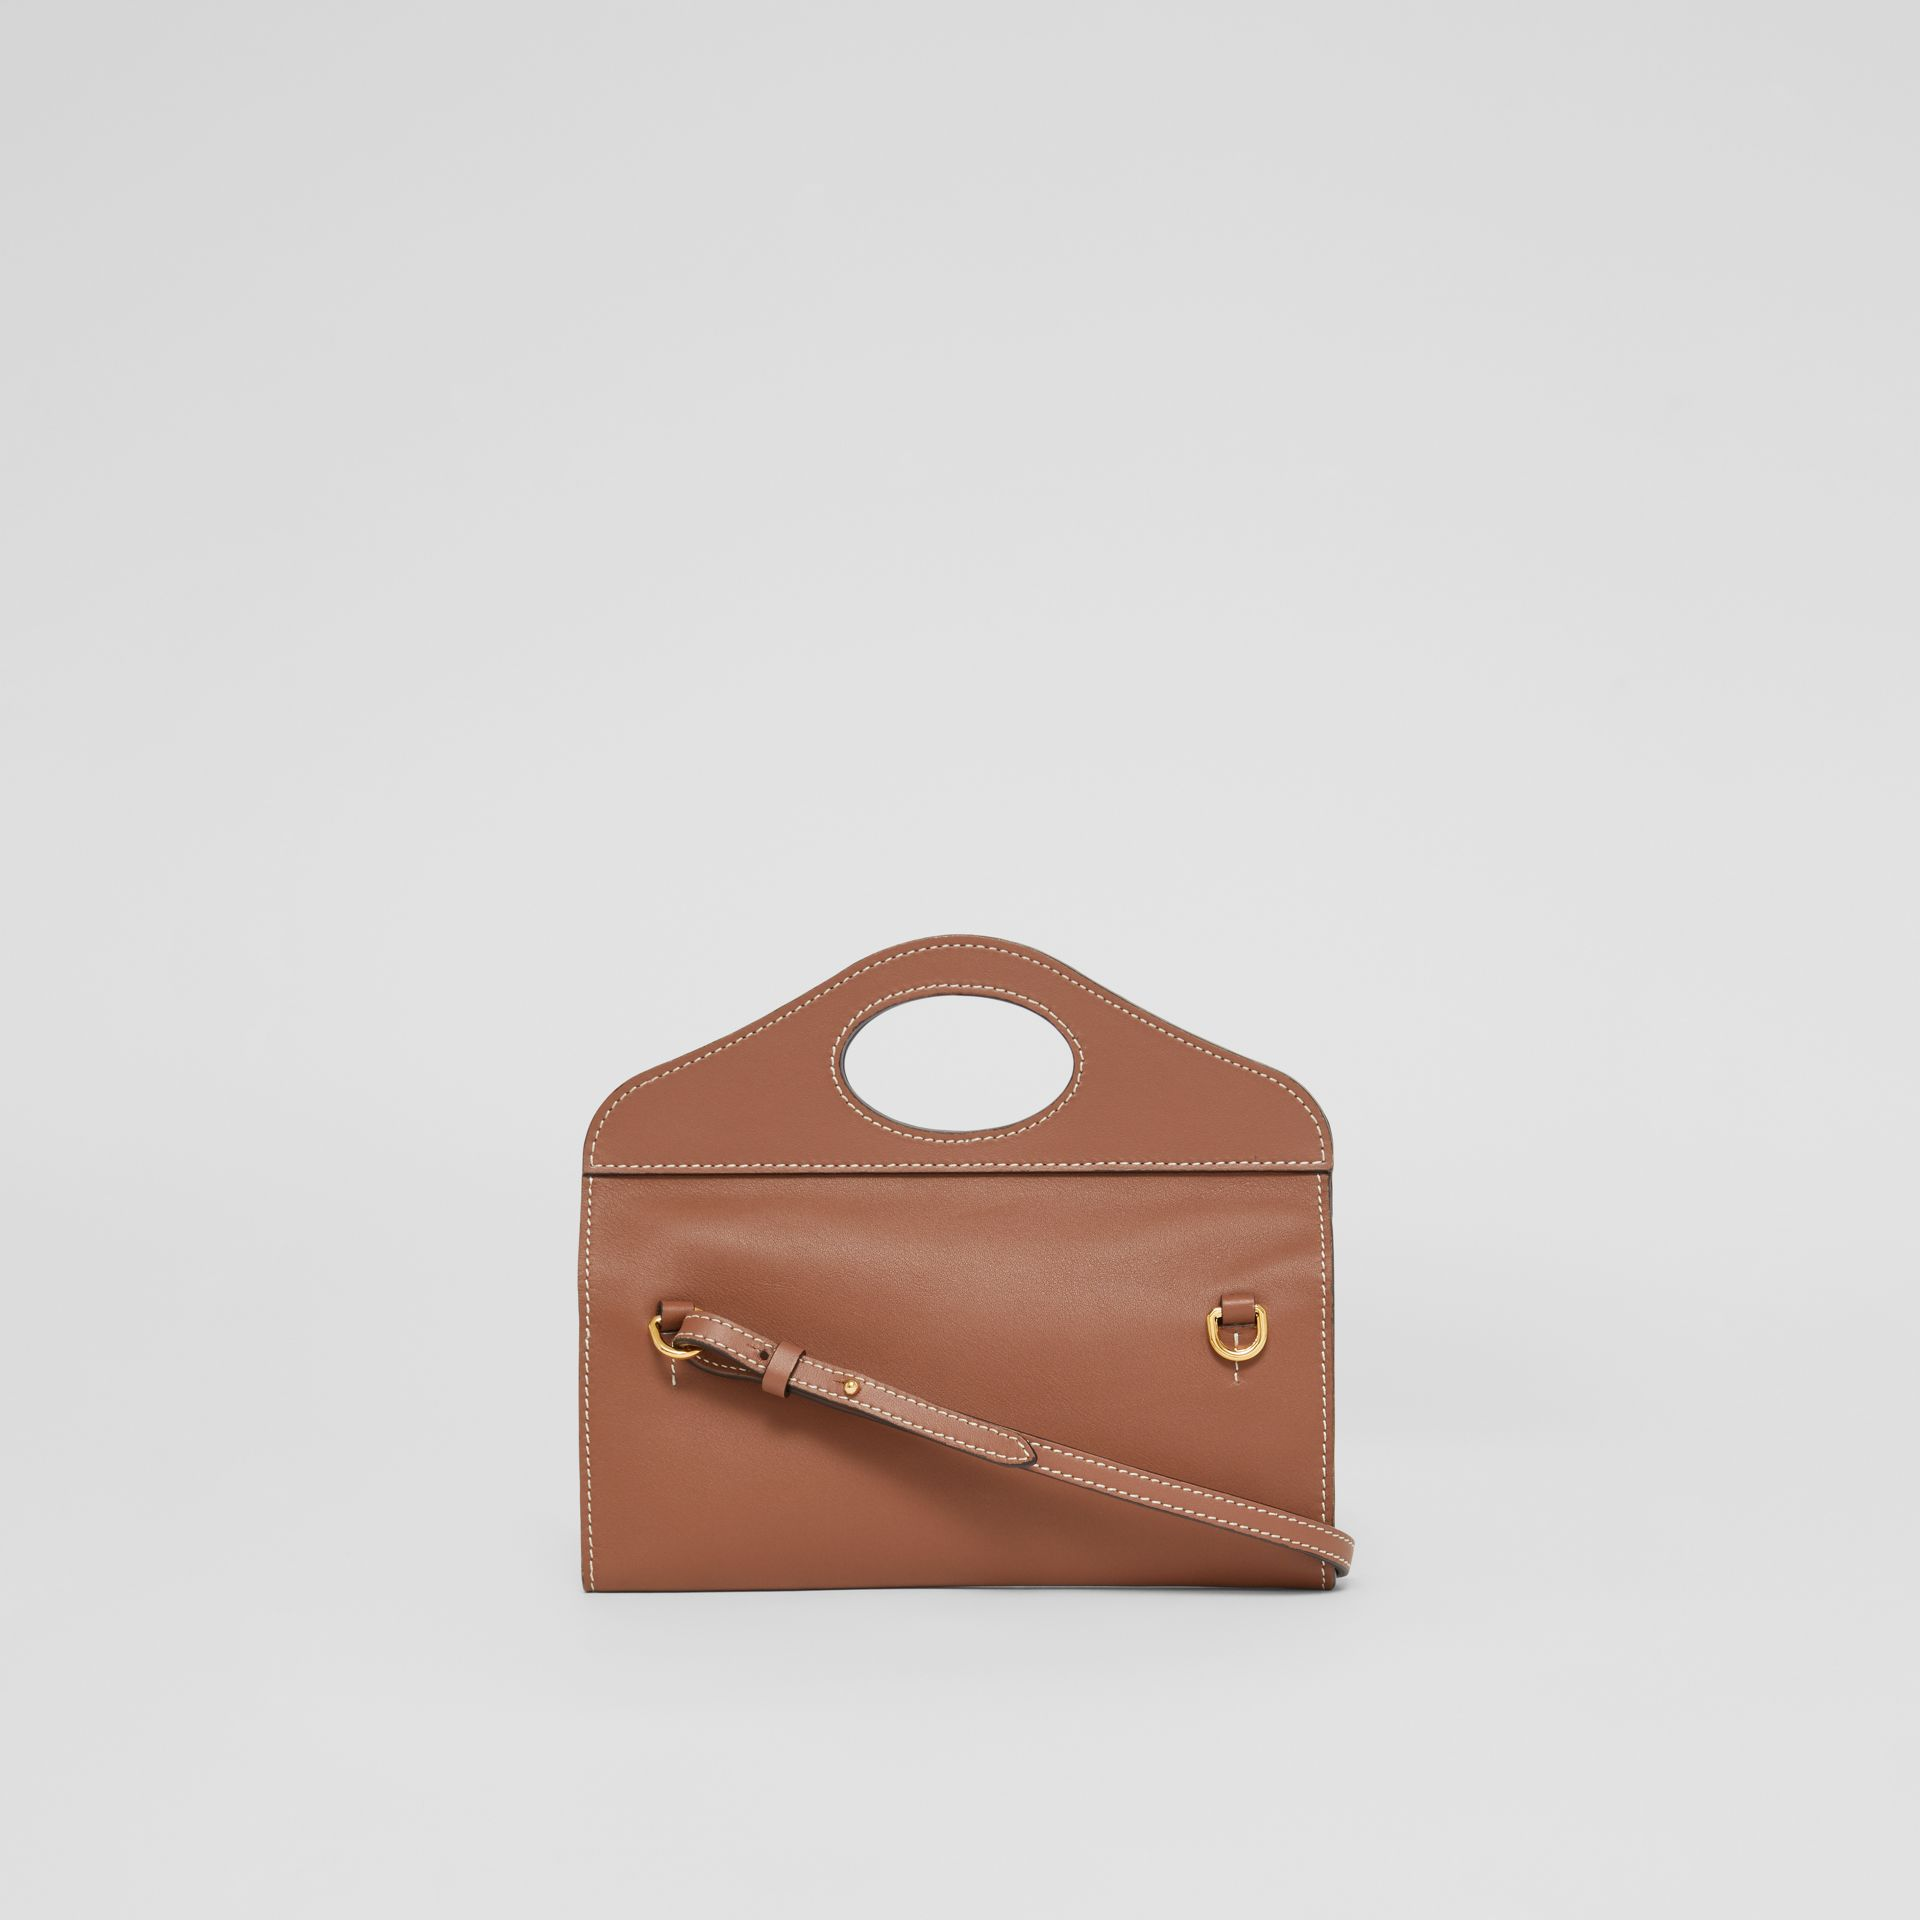 Mini Topstitched Lambskin Pocket Clutch in Malt Brown - Women | Burberry - gallery image 7